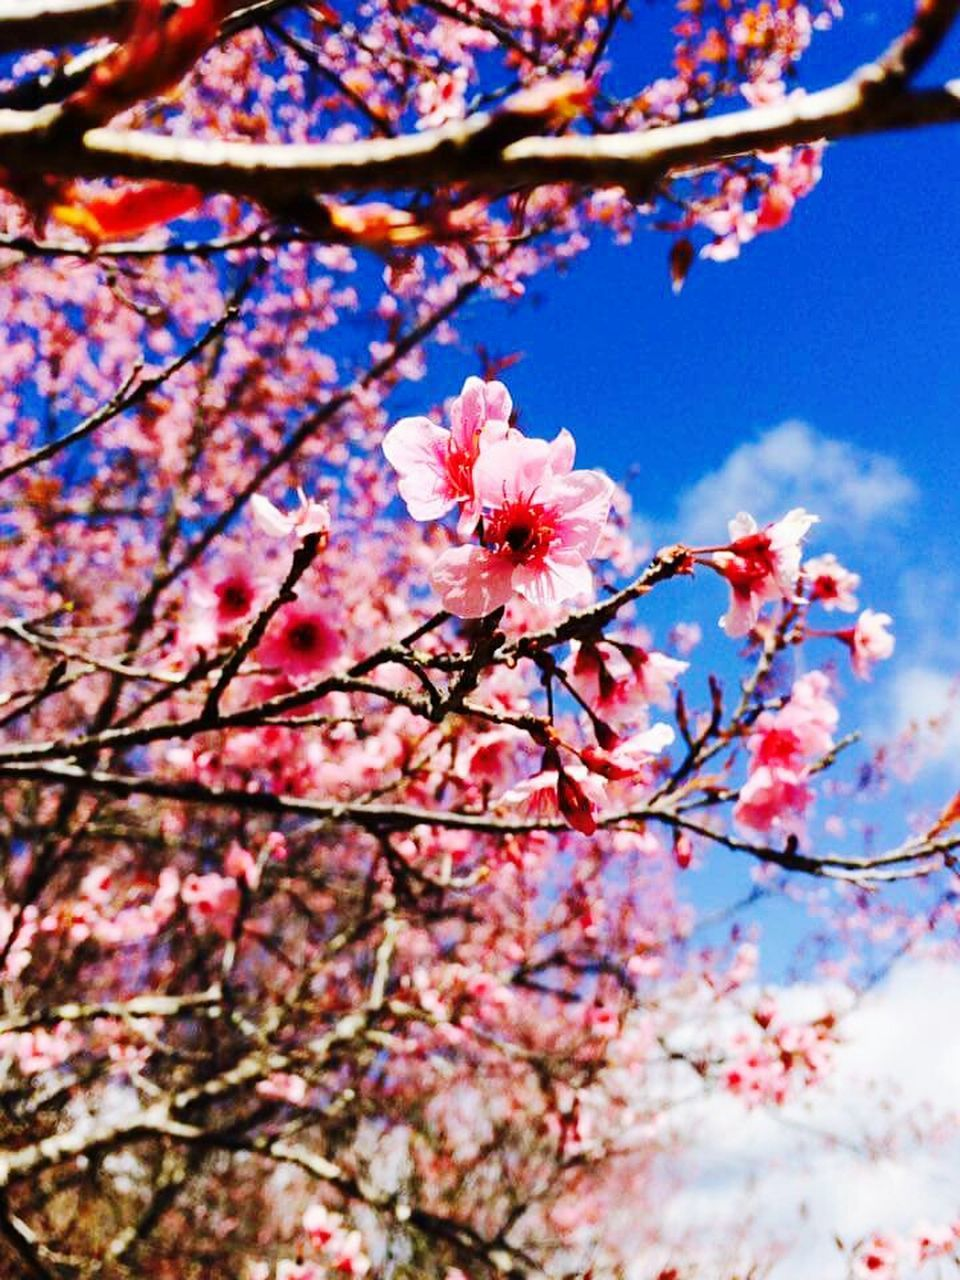 flower, blossom, beauty in nature, tree, branch, springtime, fragility, growth, cherry blossom, freshness, low angle view, nature, cherry tree, apple blossom, orchard, botany, no people, day, plum blossom, twig, pink color, petal, outdoors, sky, selective focus, close-up, stamen, blooming, flower head